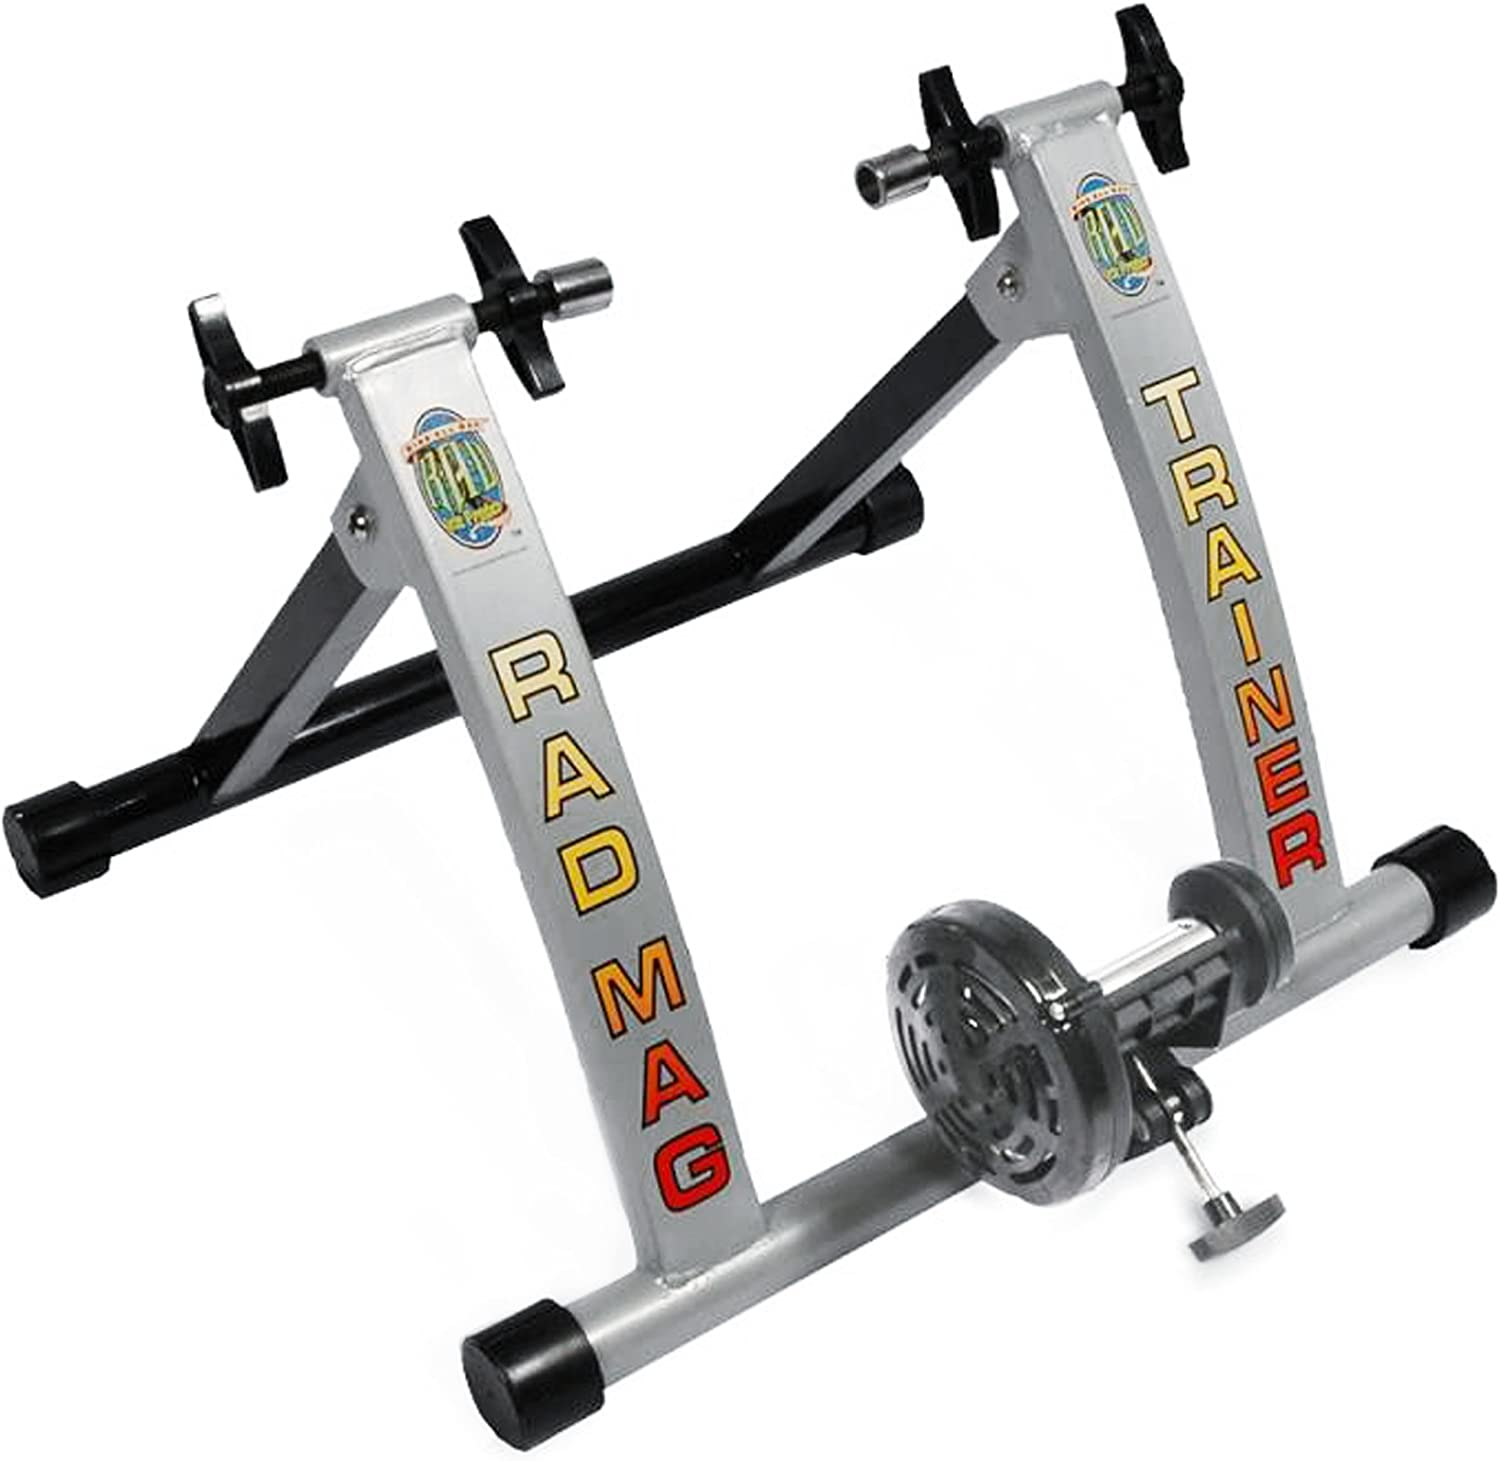 RAD Cycle Bike Trainer Indoor Bicycle Exercise Portable Work Out Cycle